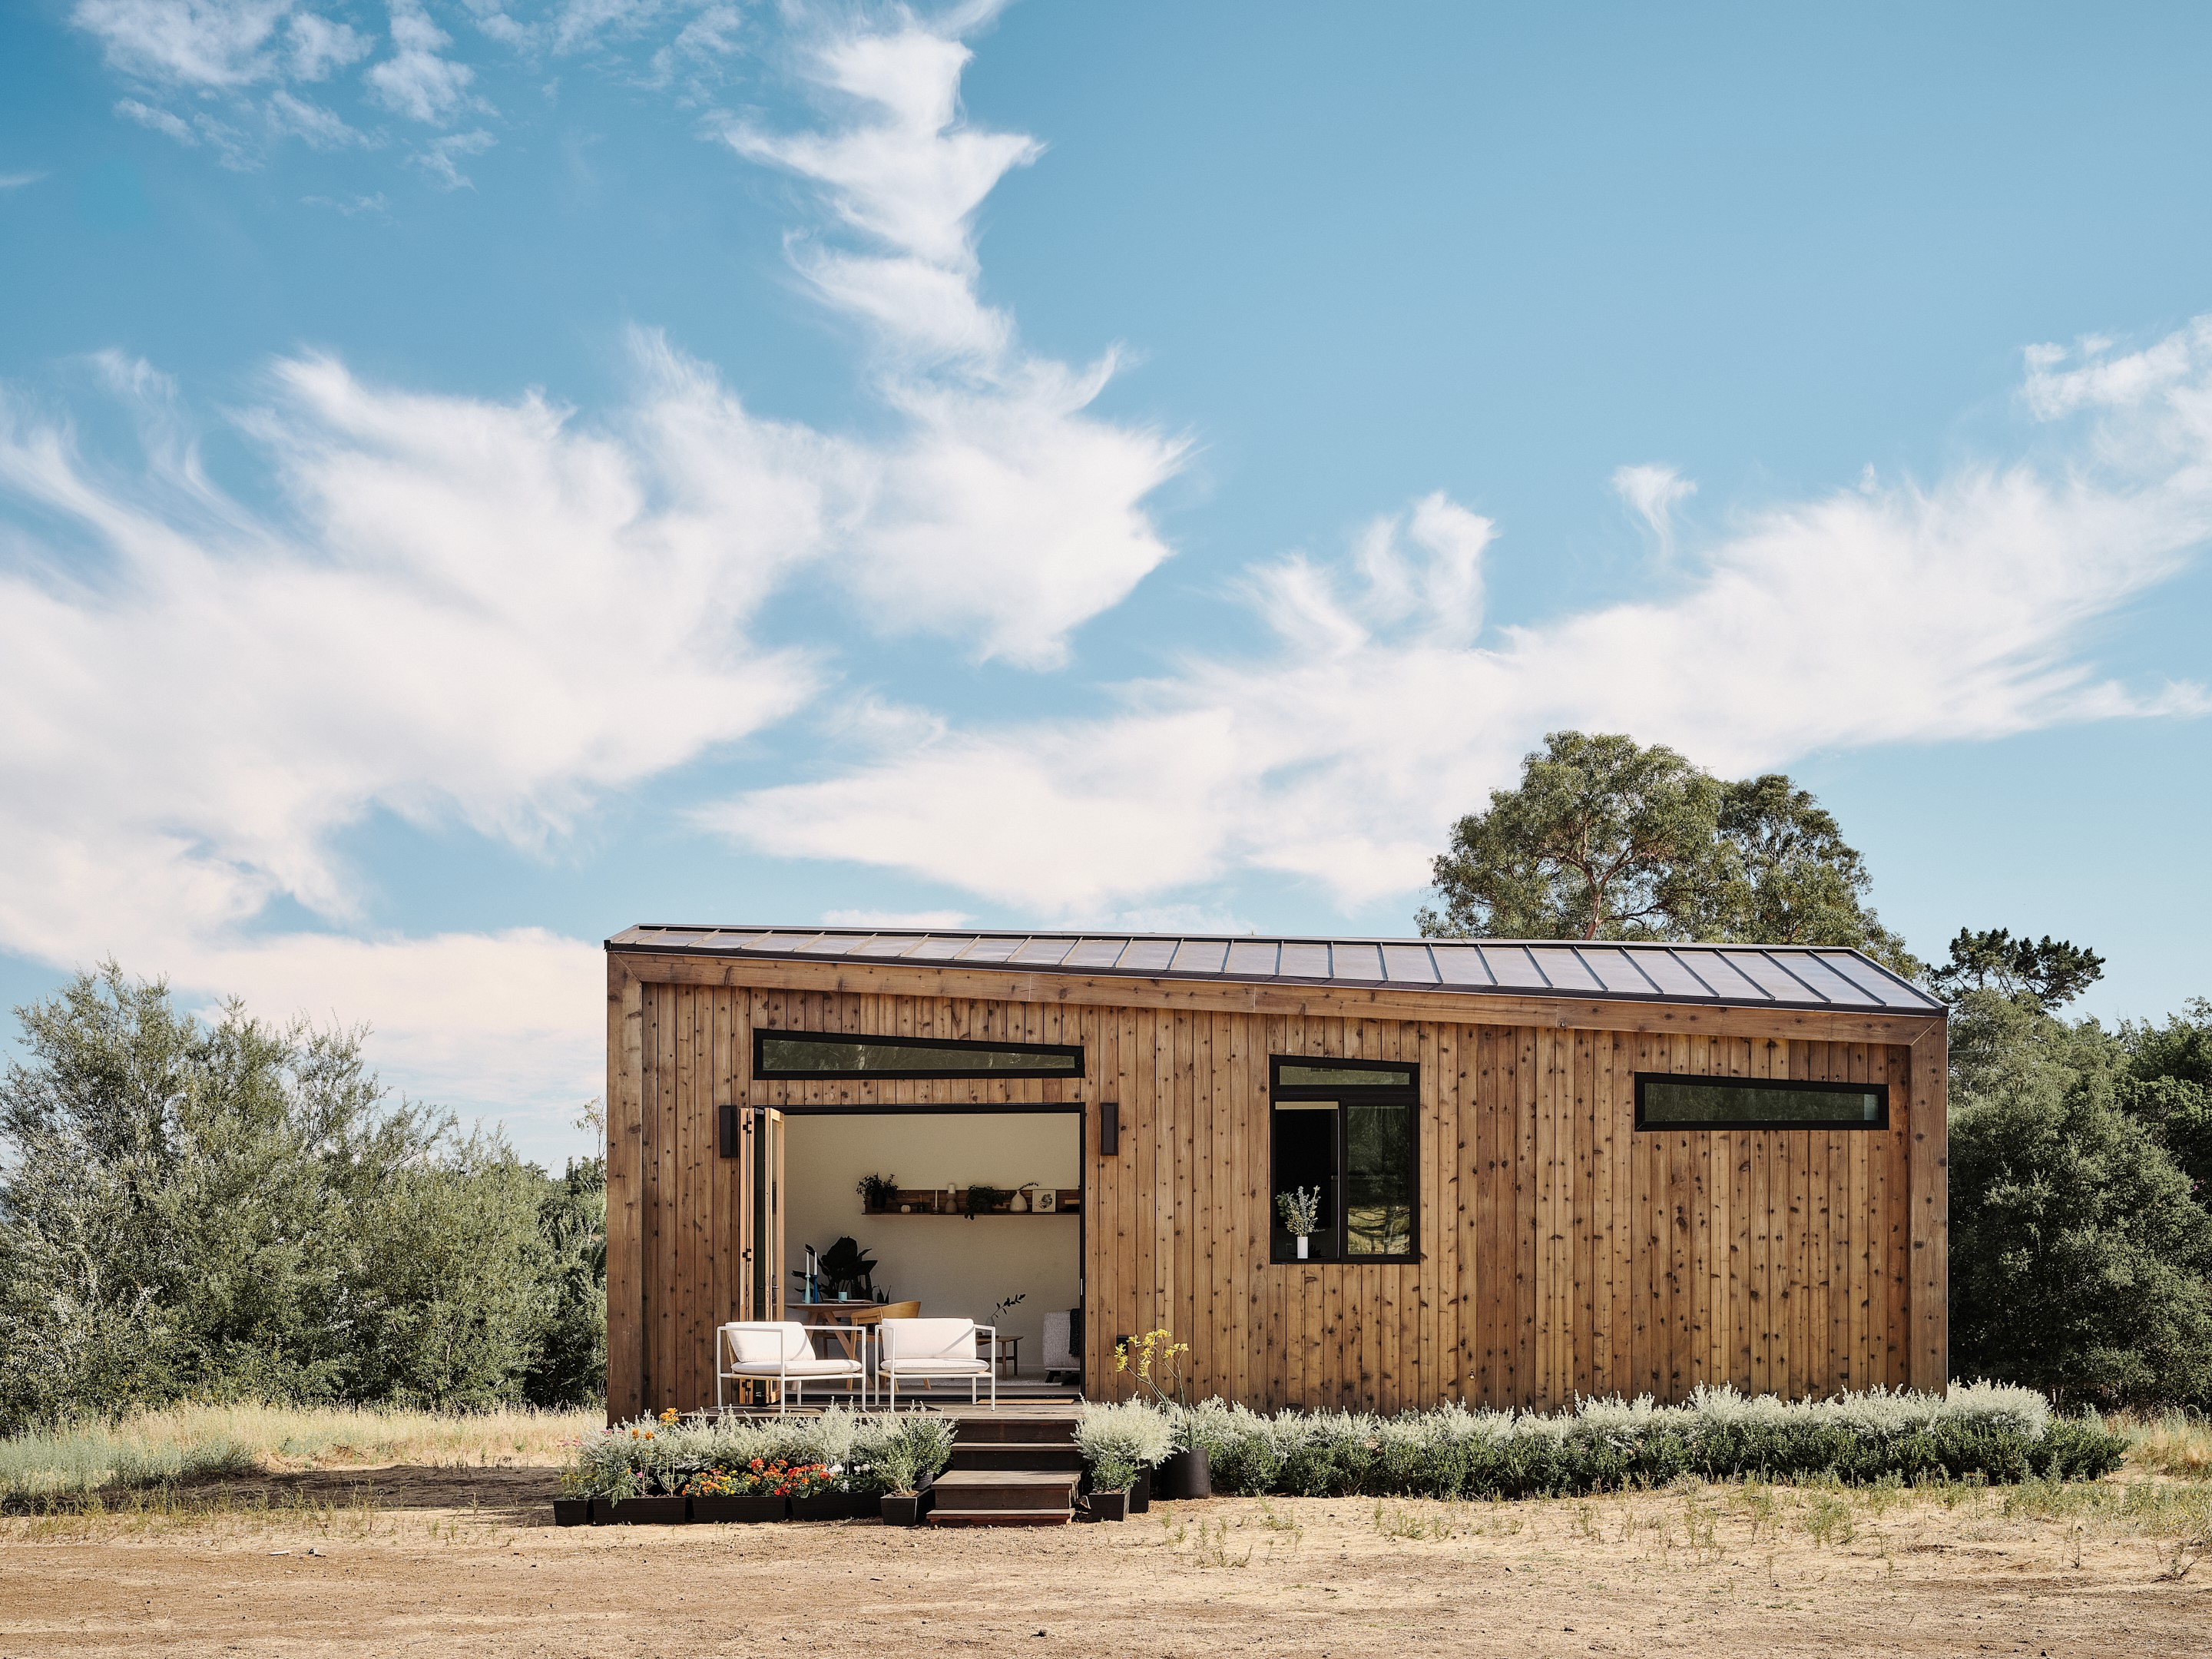 Sleek prefab cabins adapted into pre-approved ADUs